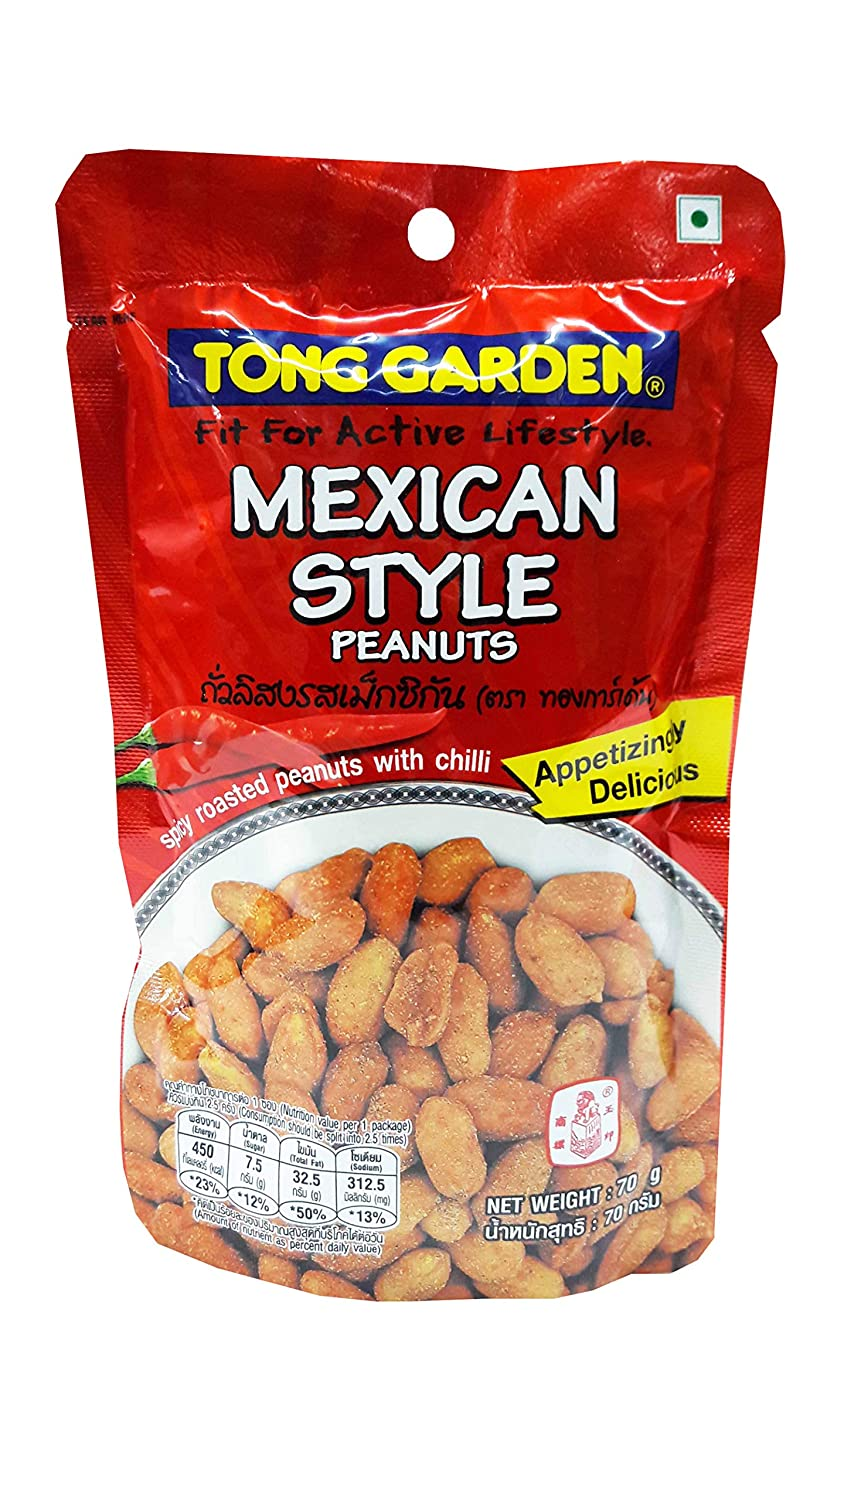 3 packs of Mexican Style Peanuts, Appetizingly Delicious Peanuts Snack from Tong Garden brand, Spicy roasted Peanuts with chilli. Fit For Active Lifestyle. (70g/ pack)